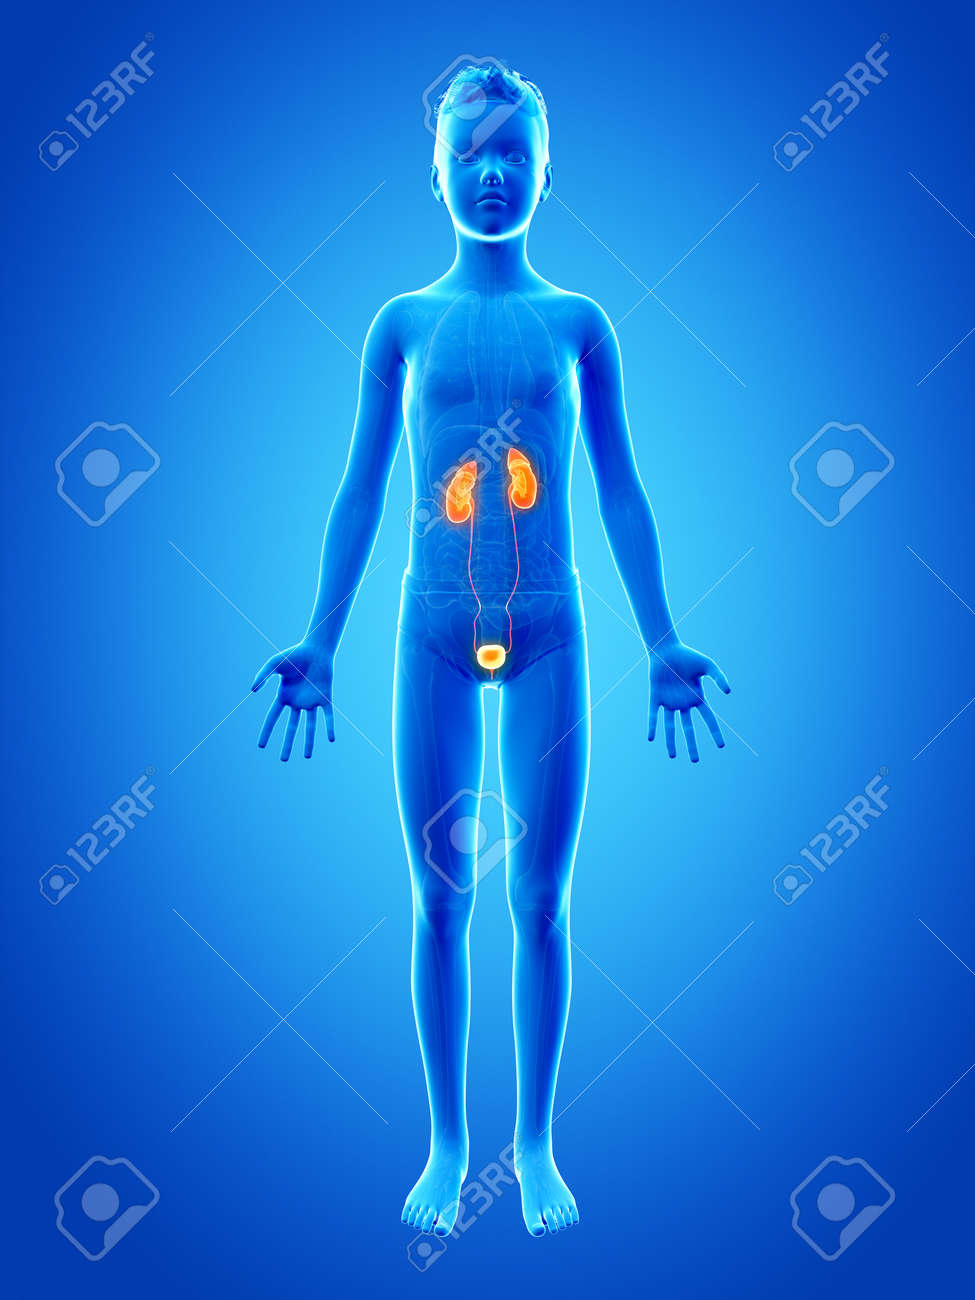 Anatomy Of A Young Boy The Urinary System Stock Photo Picture And